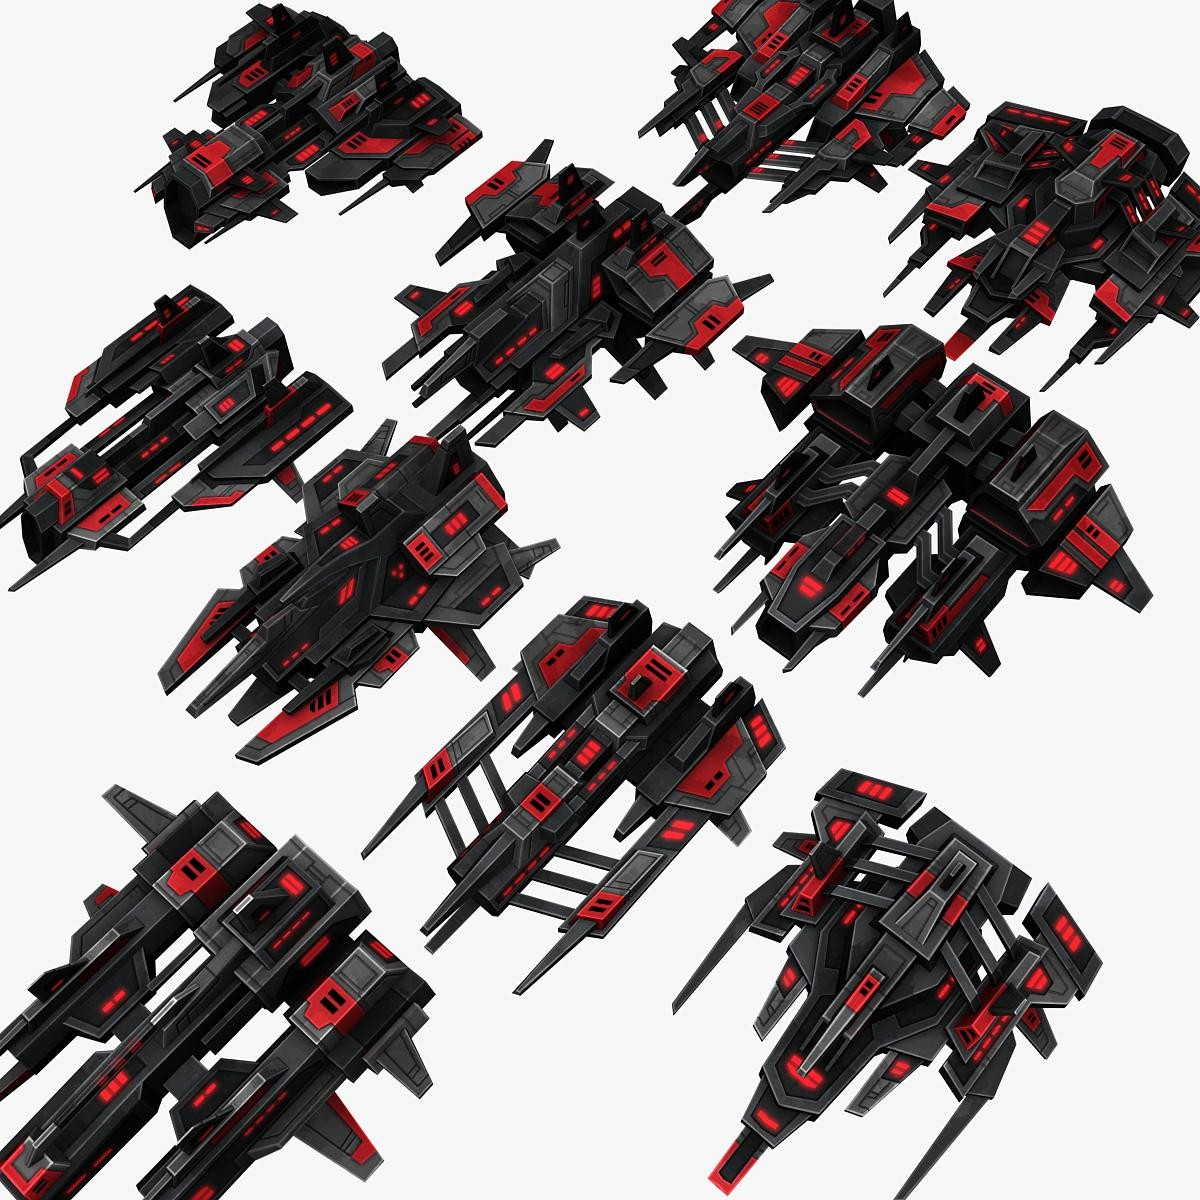 10_attack_drones_preview_0.jpg